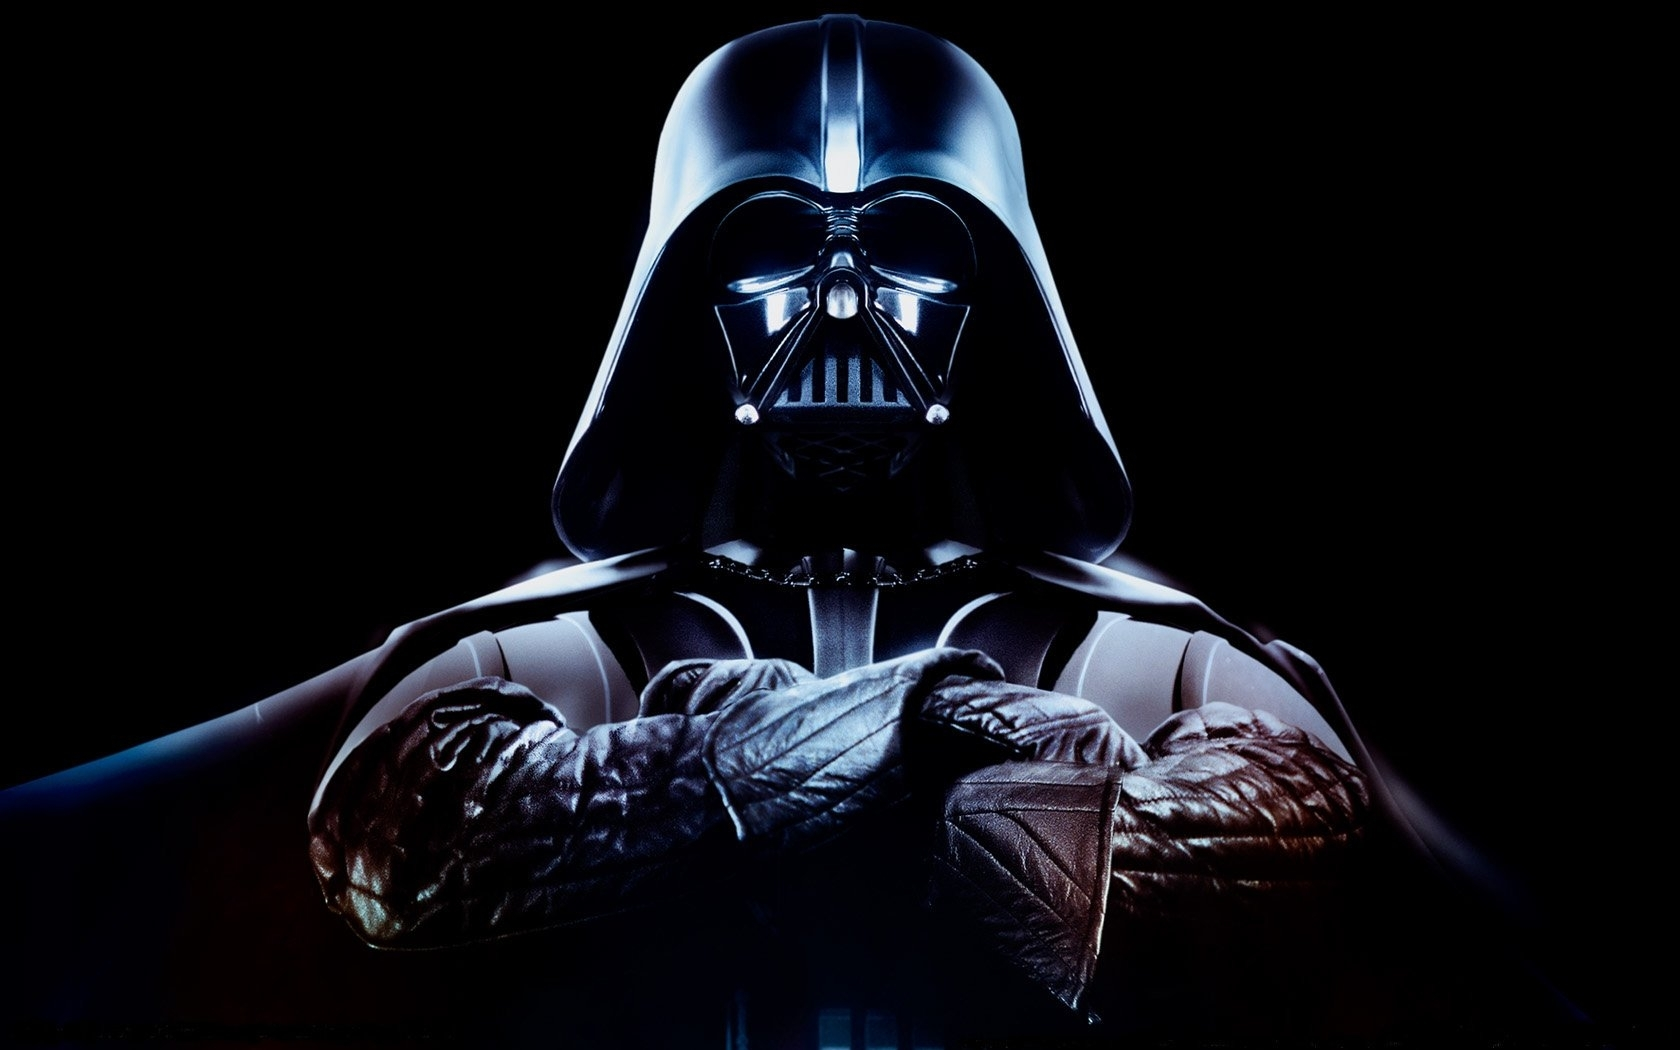 307 darth vader hd wallpapers | background images - wallpaper abyss